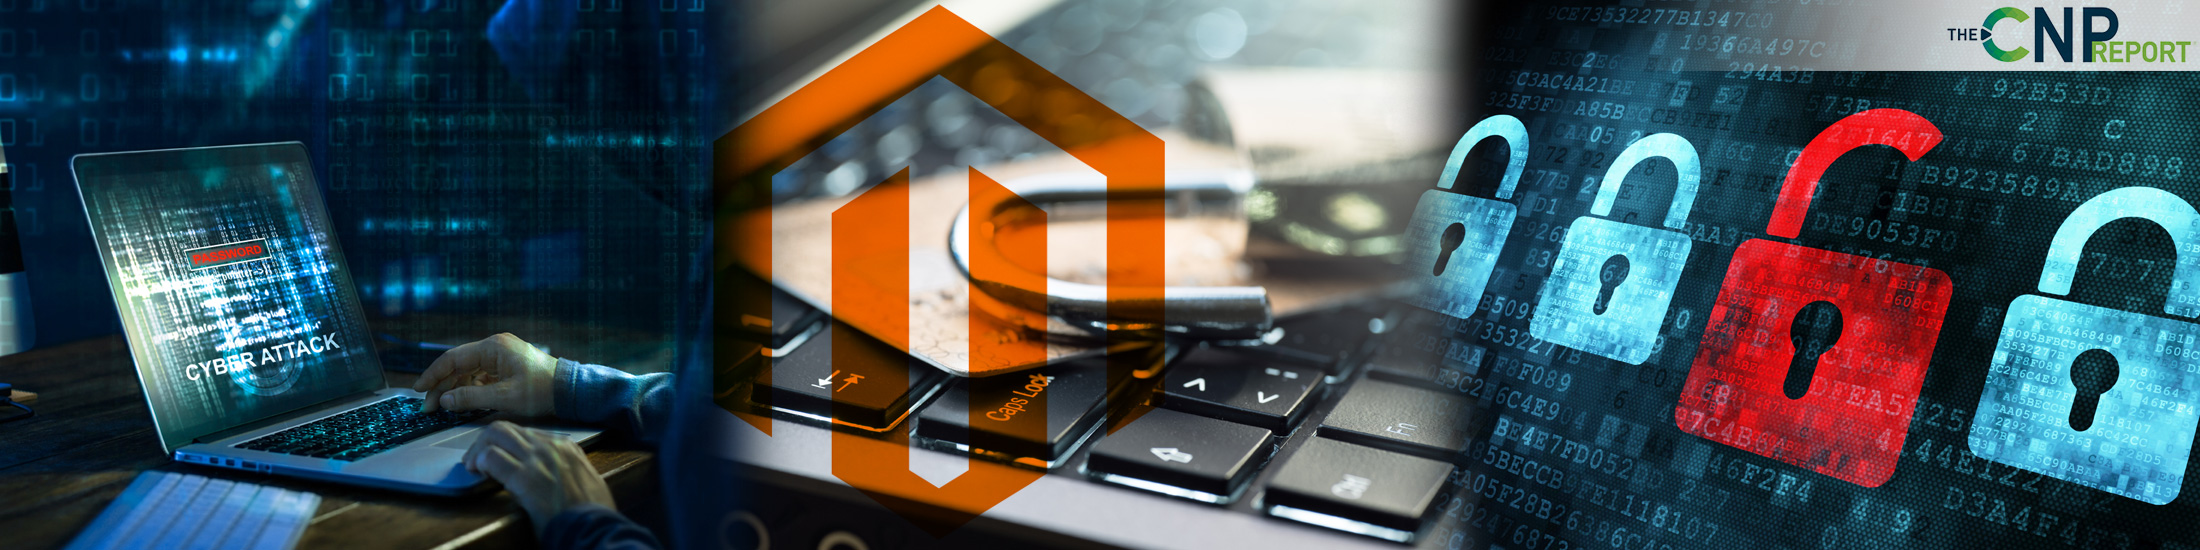 Magento Merchants Warned of Card Testing Vulnerability, Dozens of Others